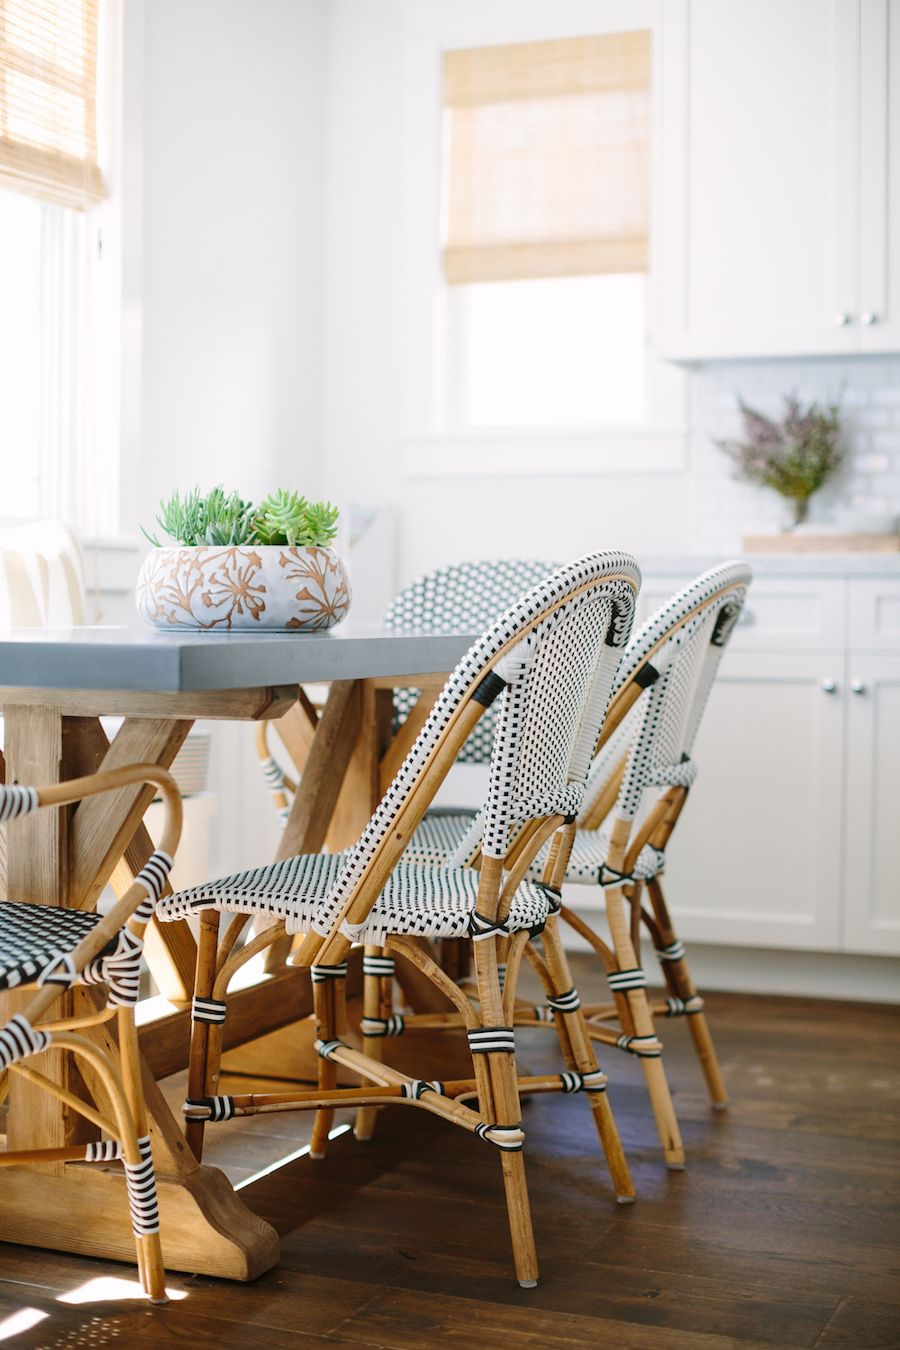 12 Darling French Bistro Chairs For Your Home!